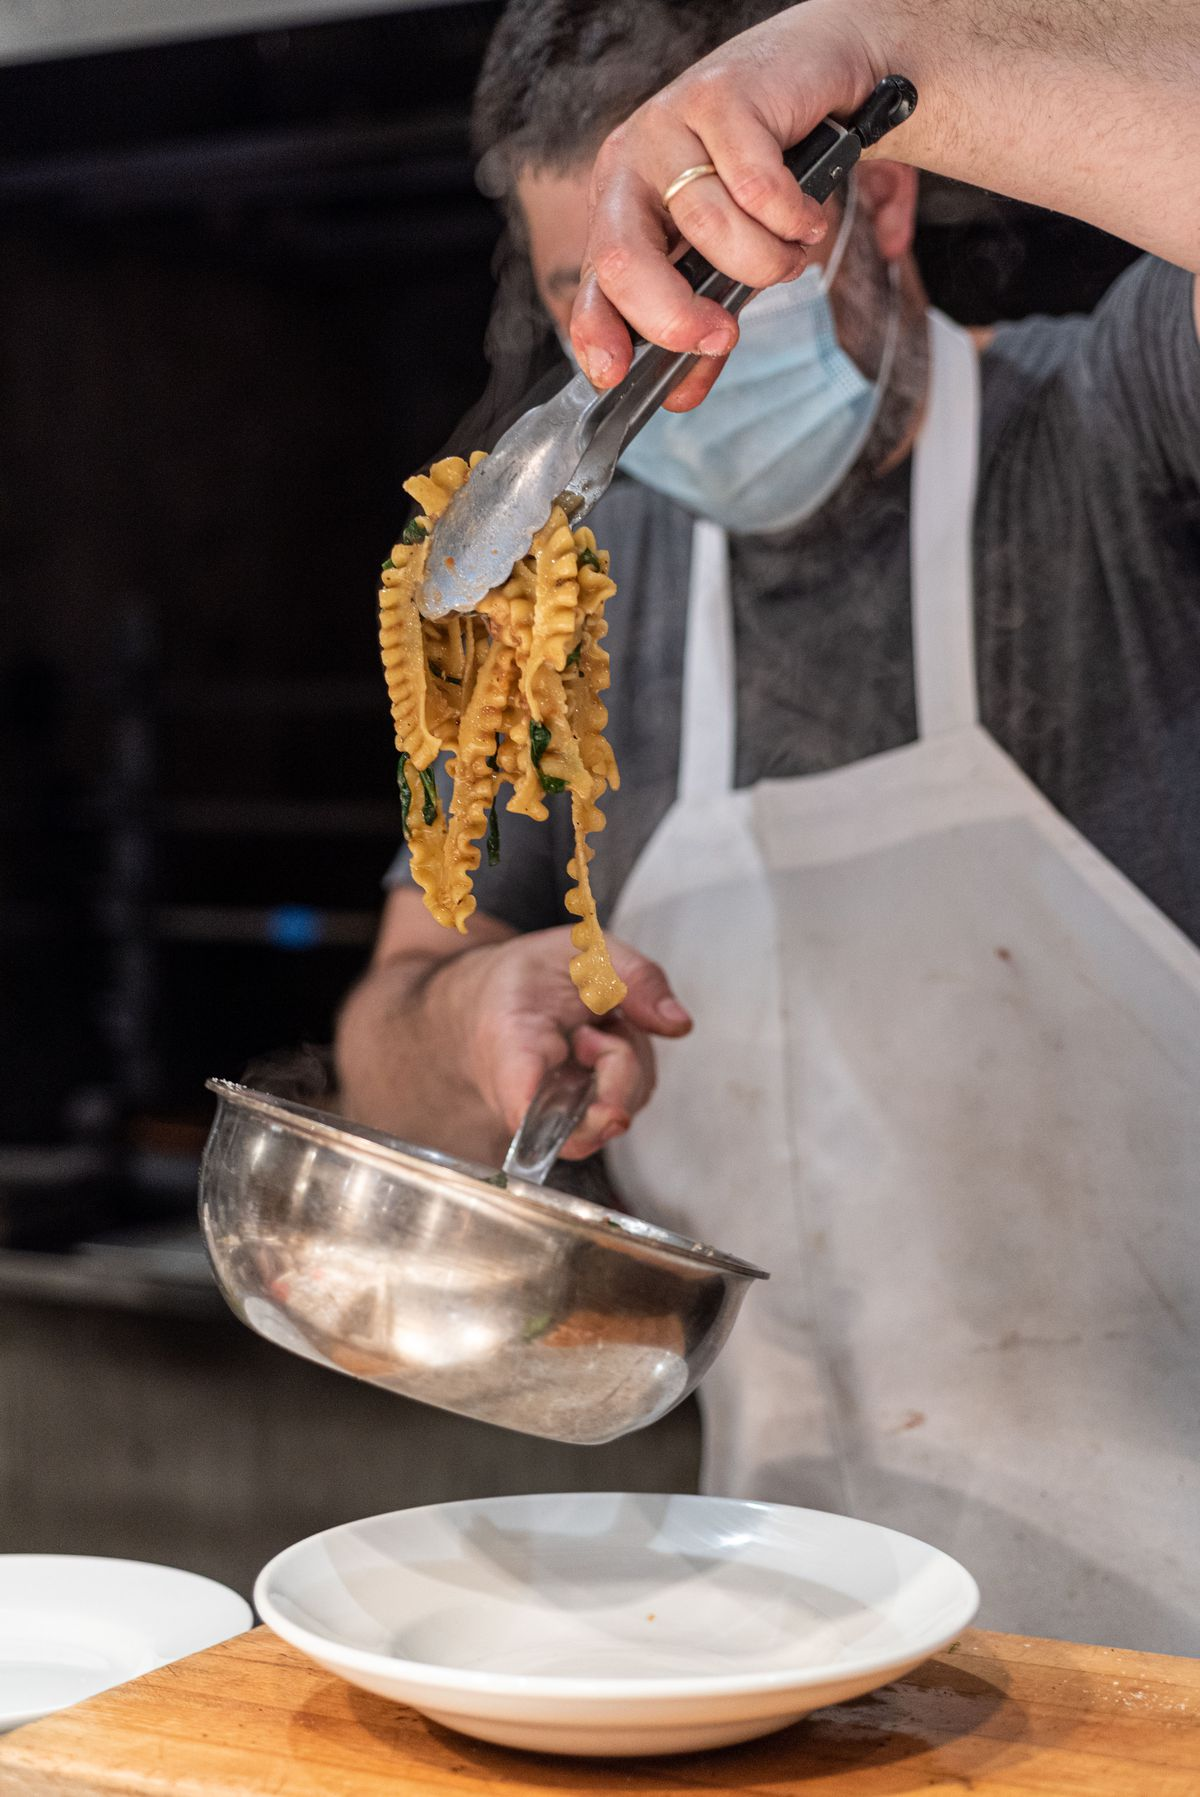 A worker uses tongs from a pan to plate pasta.